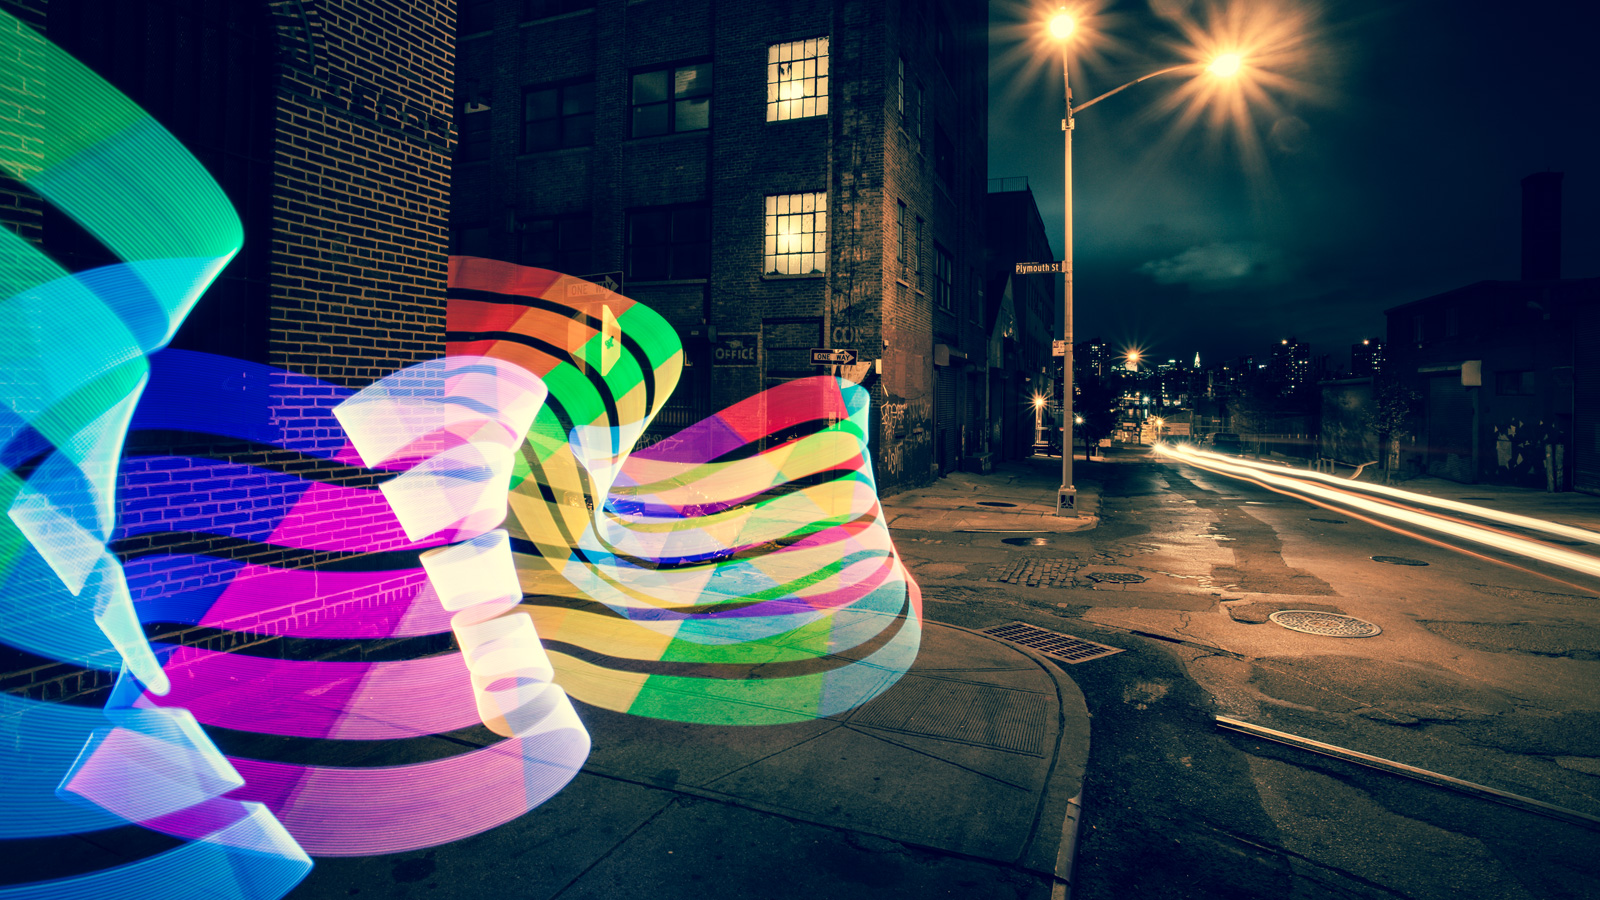 The Pixelstick in action. Source: http://thenextweb.com/gadgets/2014/01/01/crowdfunding-hot-top-campaigns-2013/5/